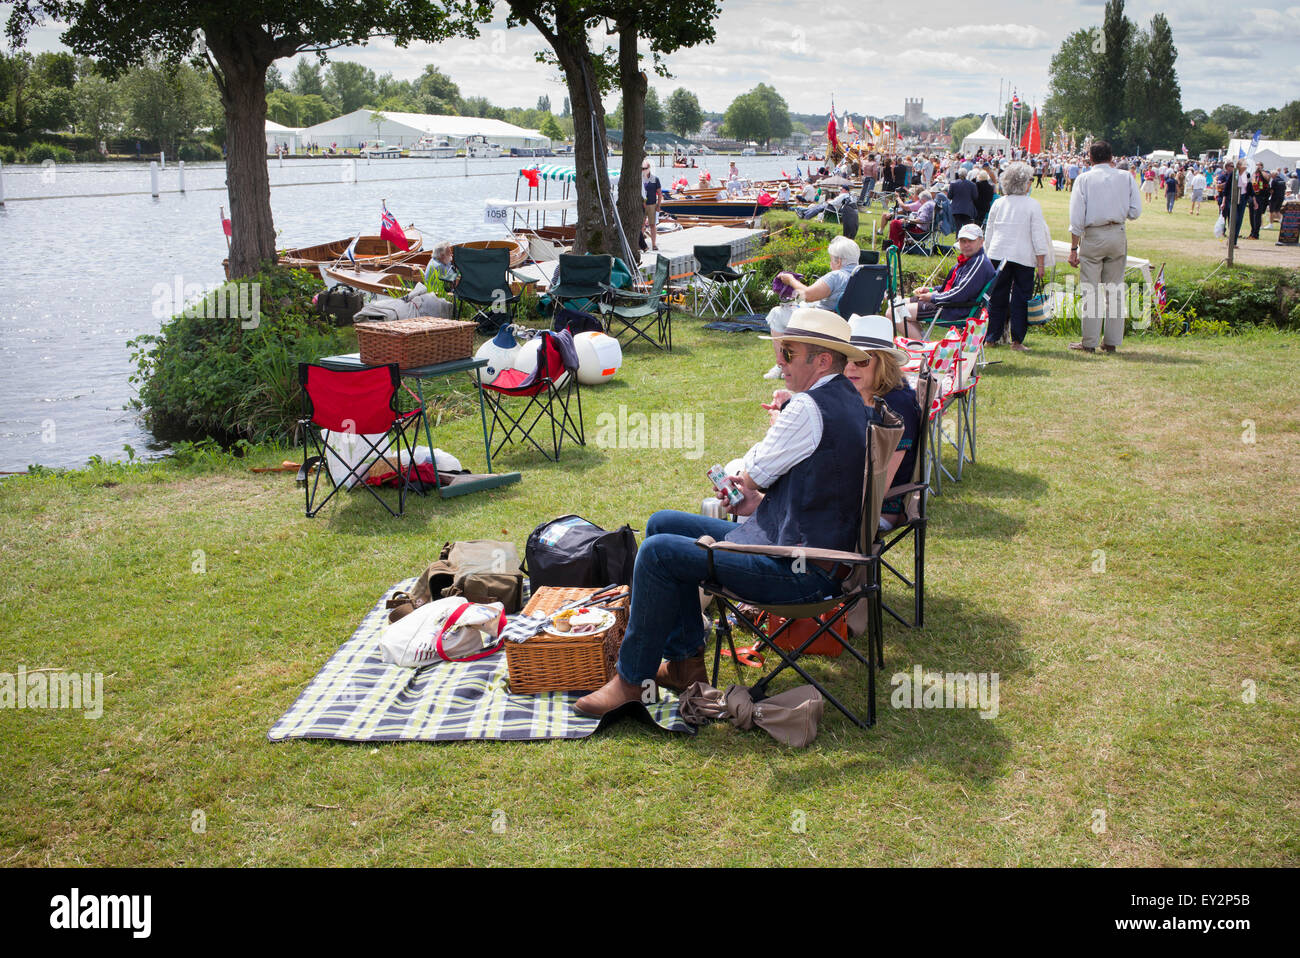 People picnicking at the Thames Traditional Boat Festival, Fawley Meadows, Henley On Thames, Oxfordshire, England - Stock Image